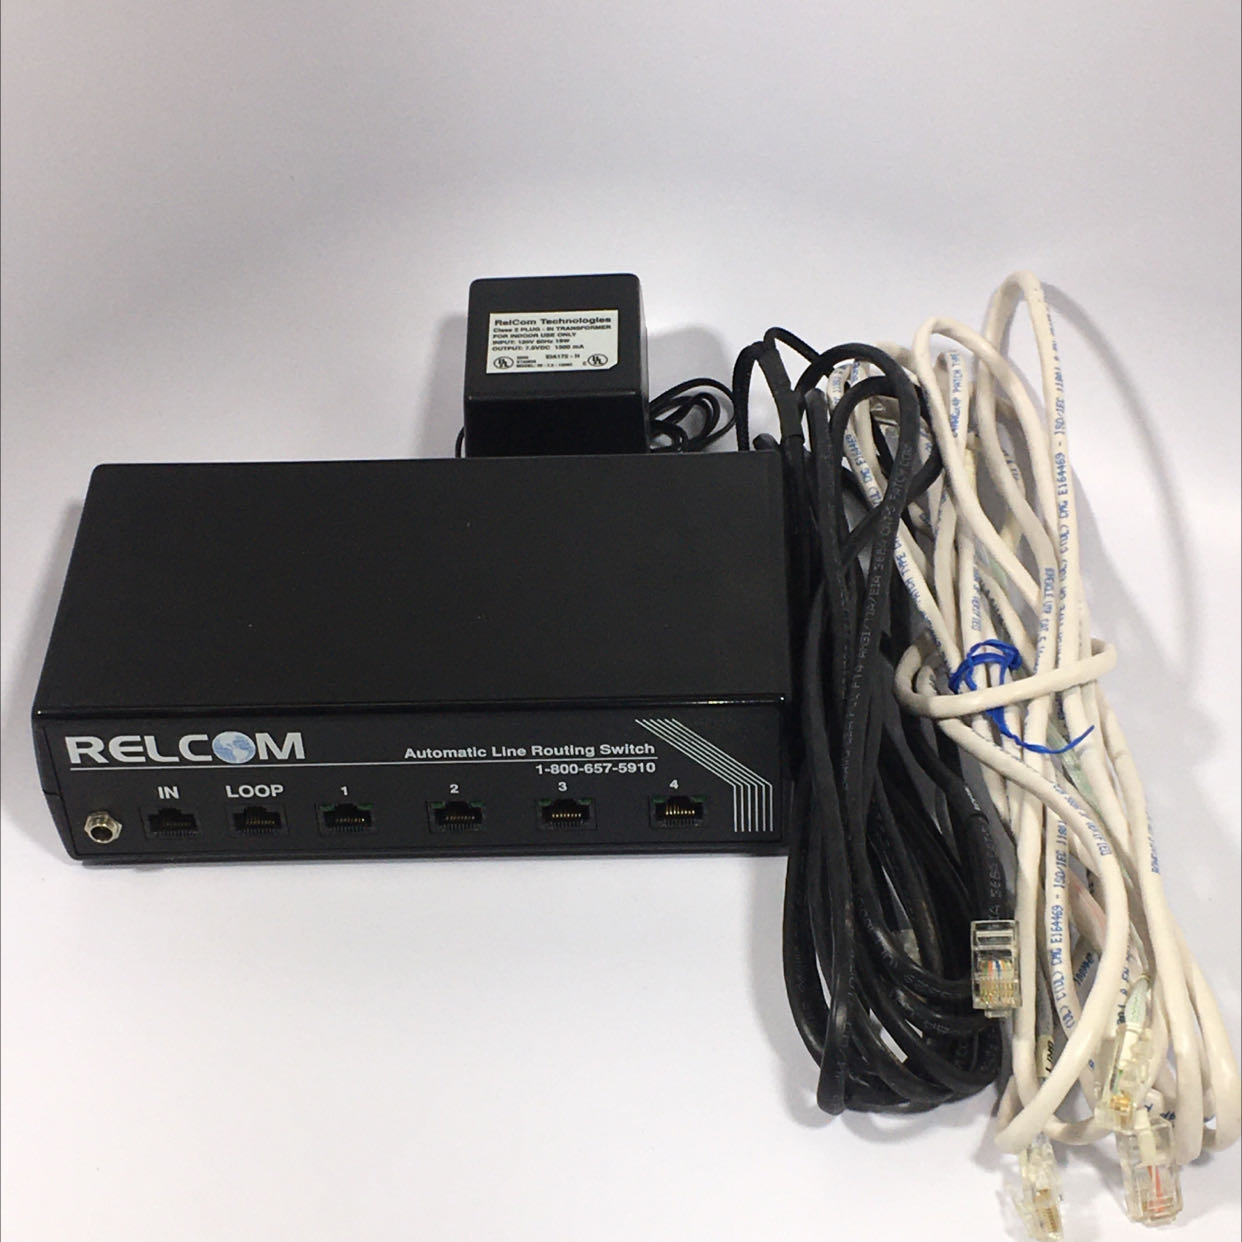 Relcom ALRS-04 Automatic Line Routing Switch